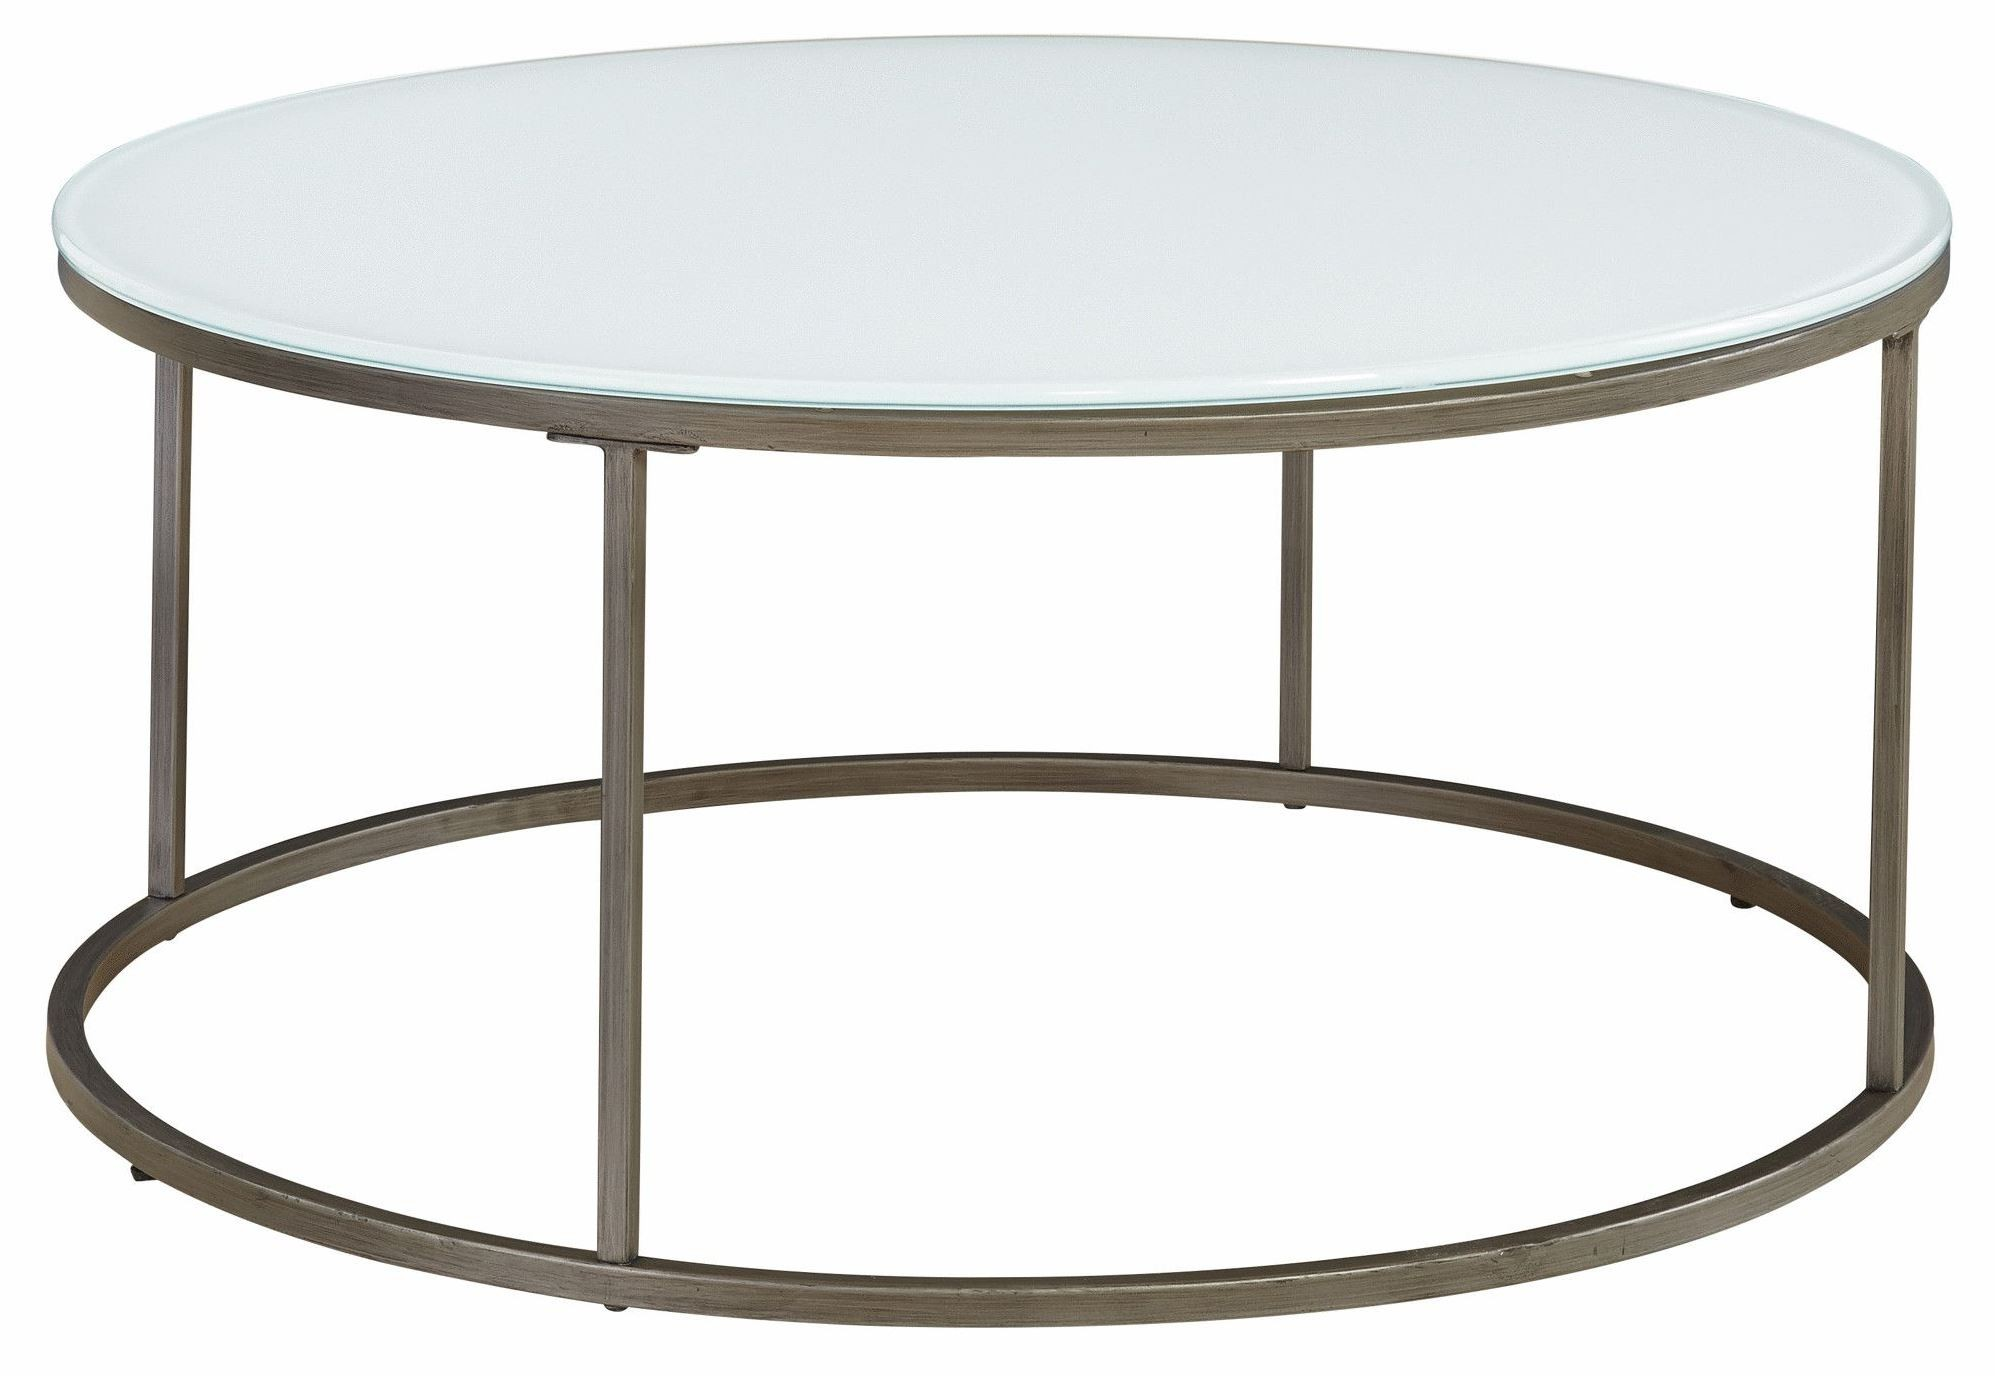 Alana Frosted Glass Top Round Coffee Table 836 075 Glf